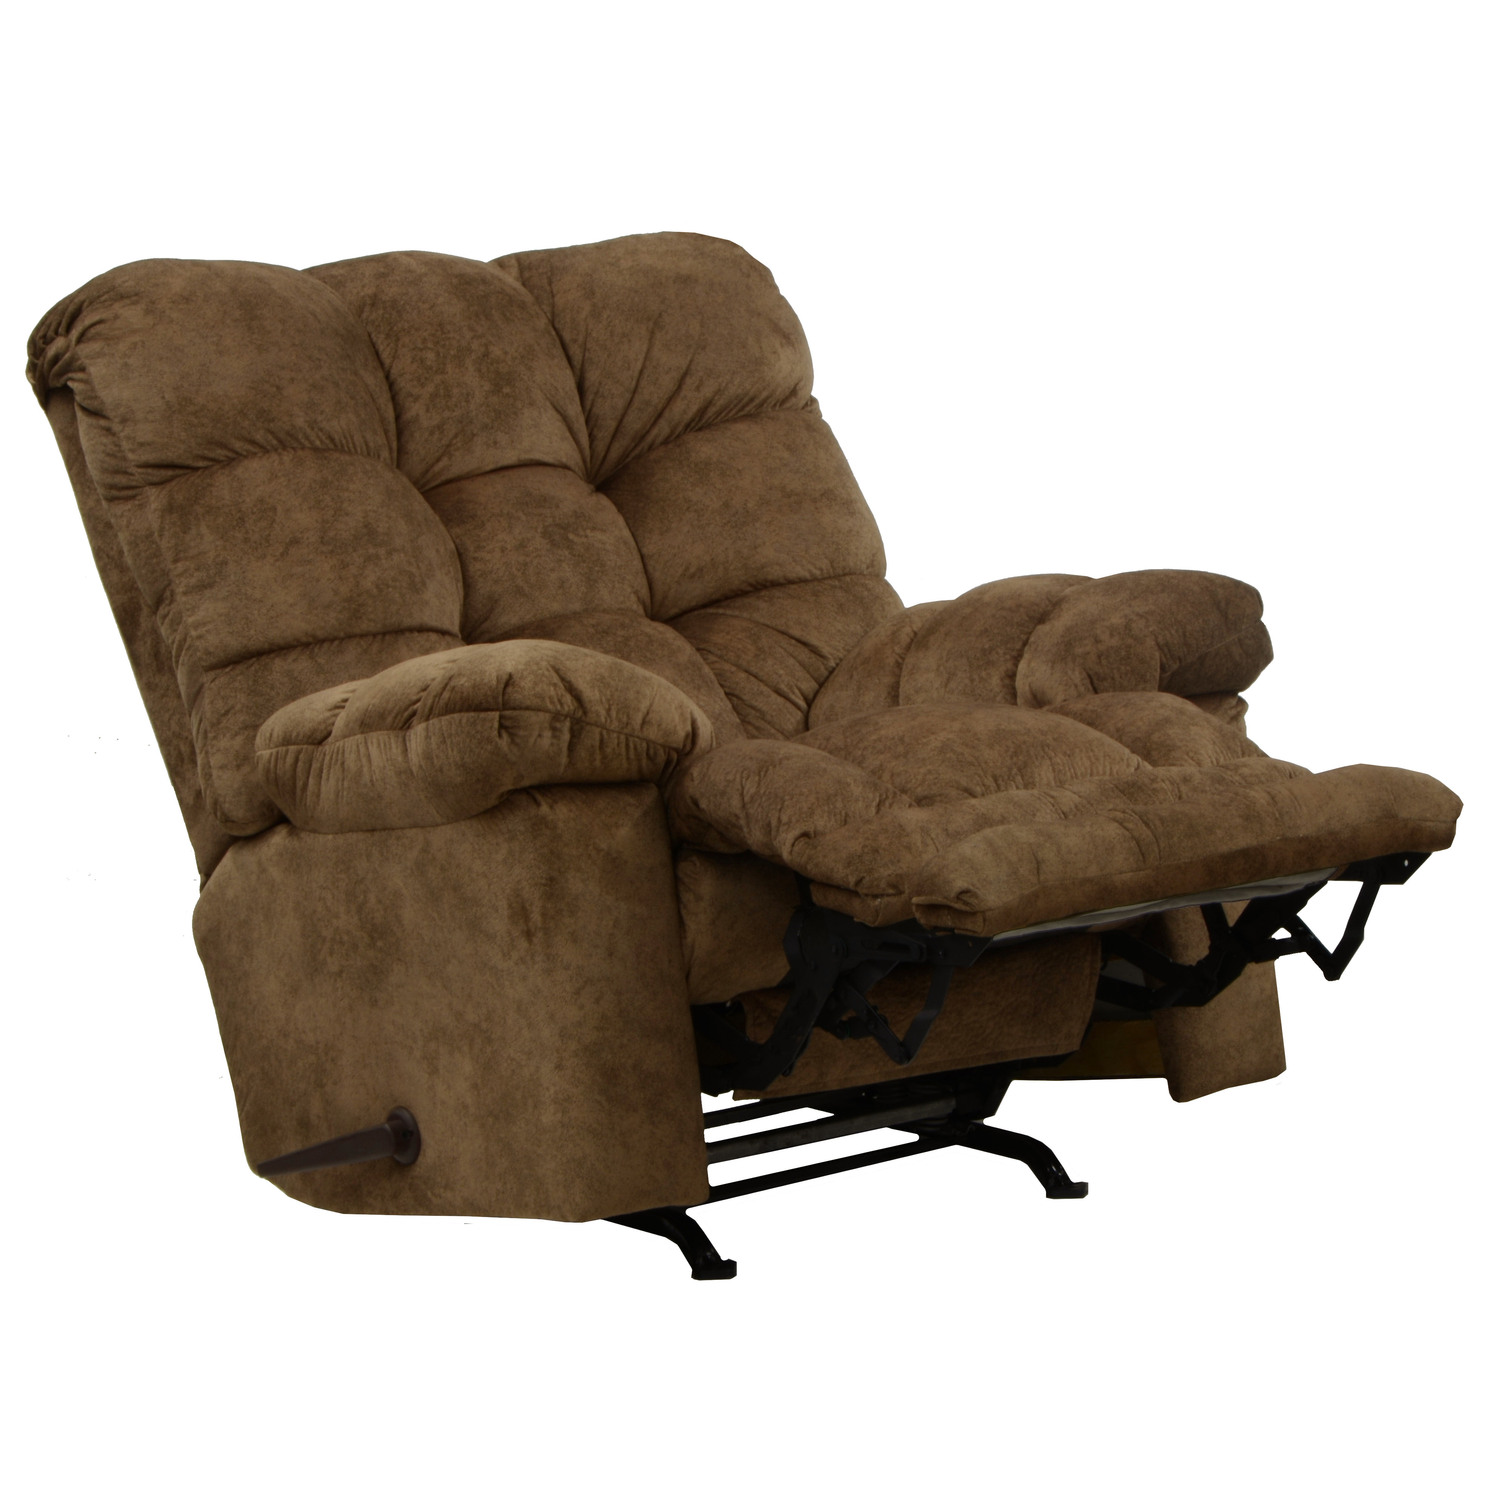 Catnapper Chair Catnapper Bronson Recliner By Oj Commerce 669 00